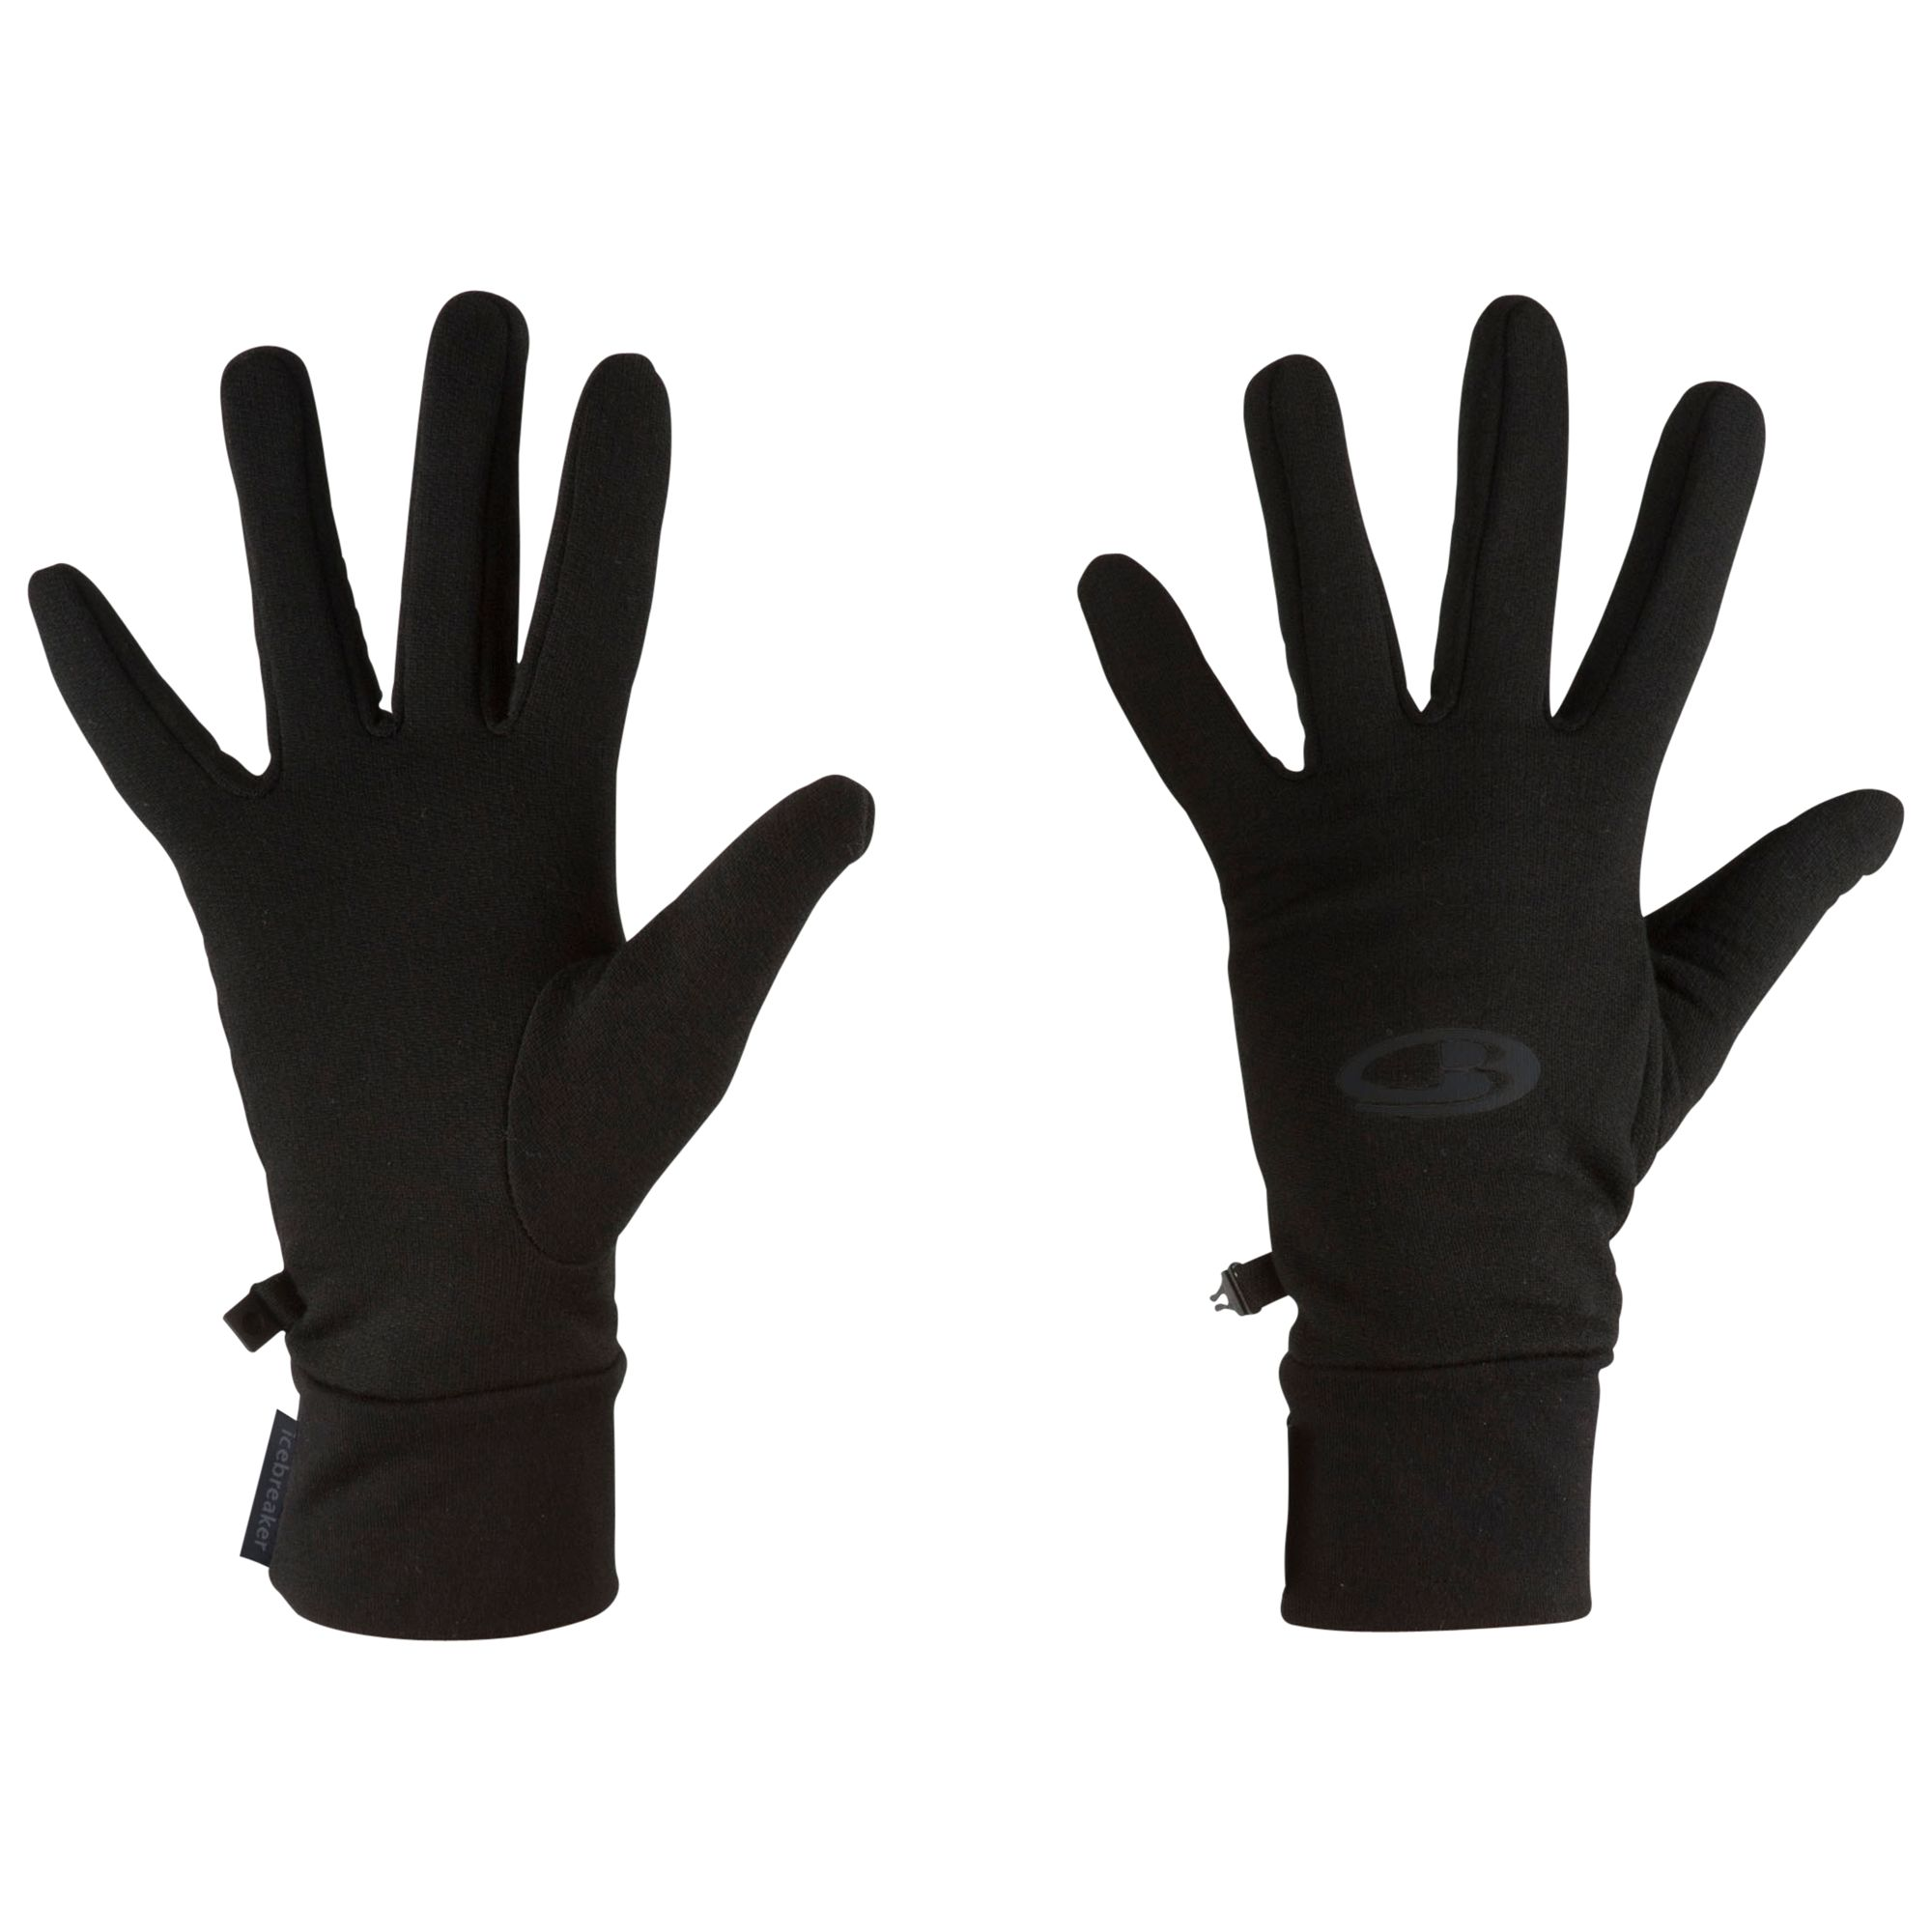 Icebreaker Realfleece Gloves, Black